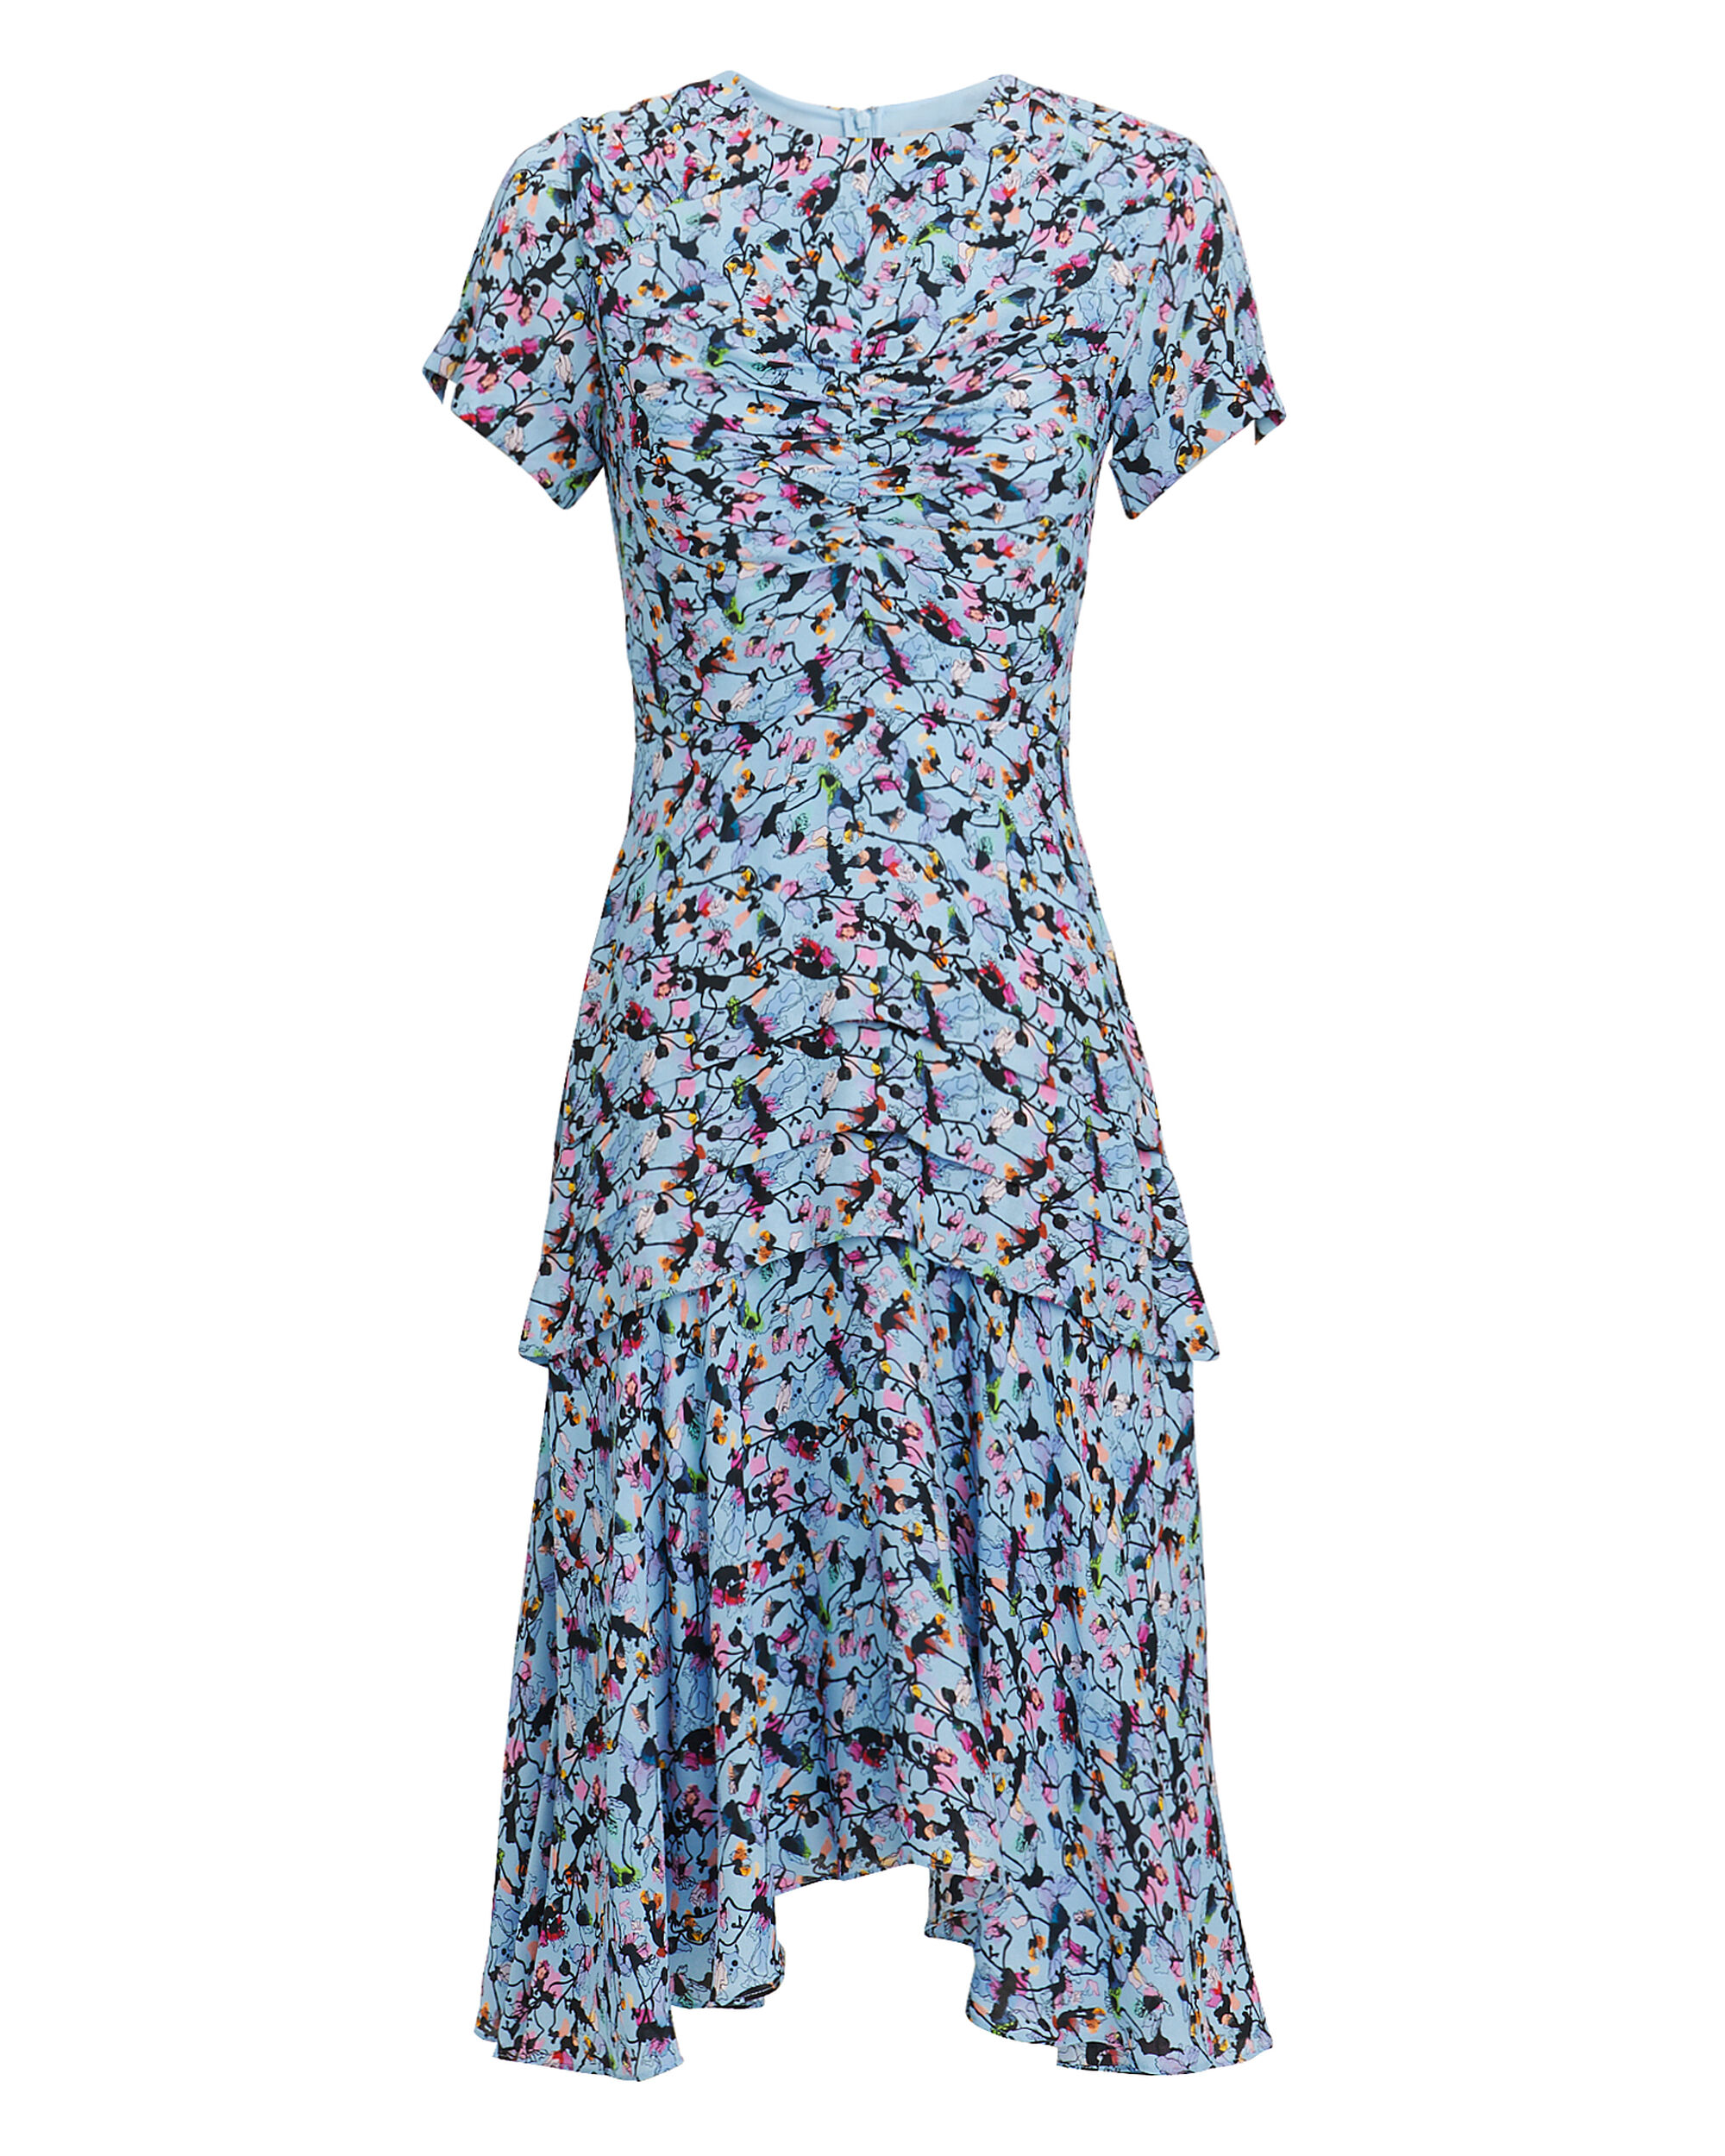 Floral Printed Dress, BLUE/FLORAL, hi-res